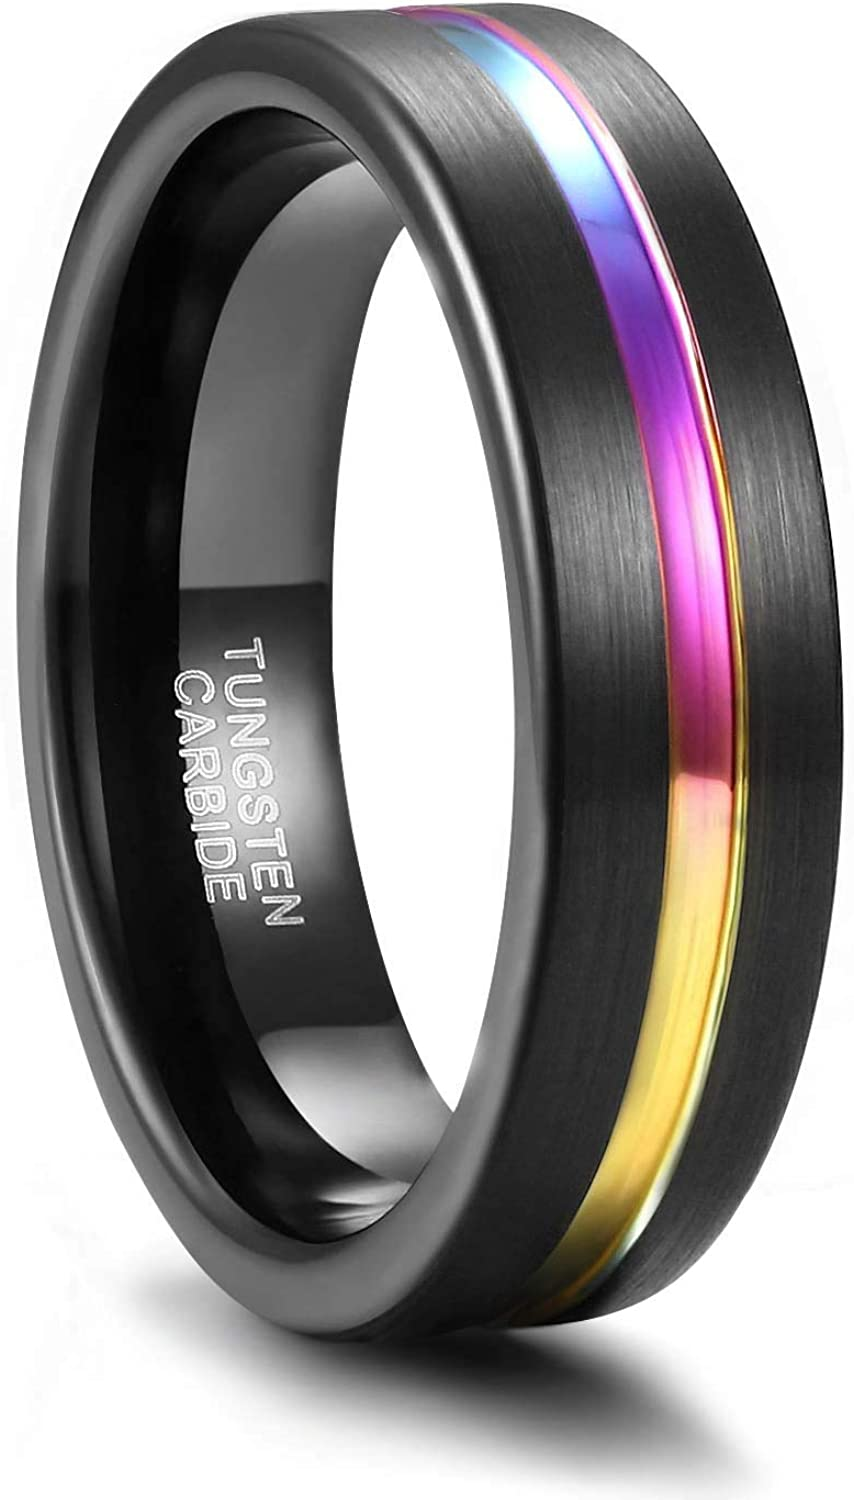 Greenpod Mens Tungsten Ring Wedding Band 5mm 6mm 7mm 8mm Engraved I Love You Thin Blue/Rose Gold/Black/Rainbow Centre Groove Comfort Fit Size 4-17